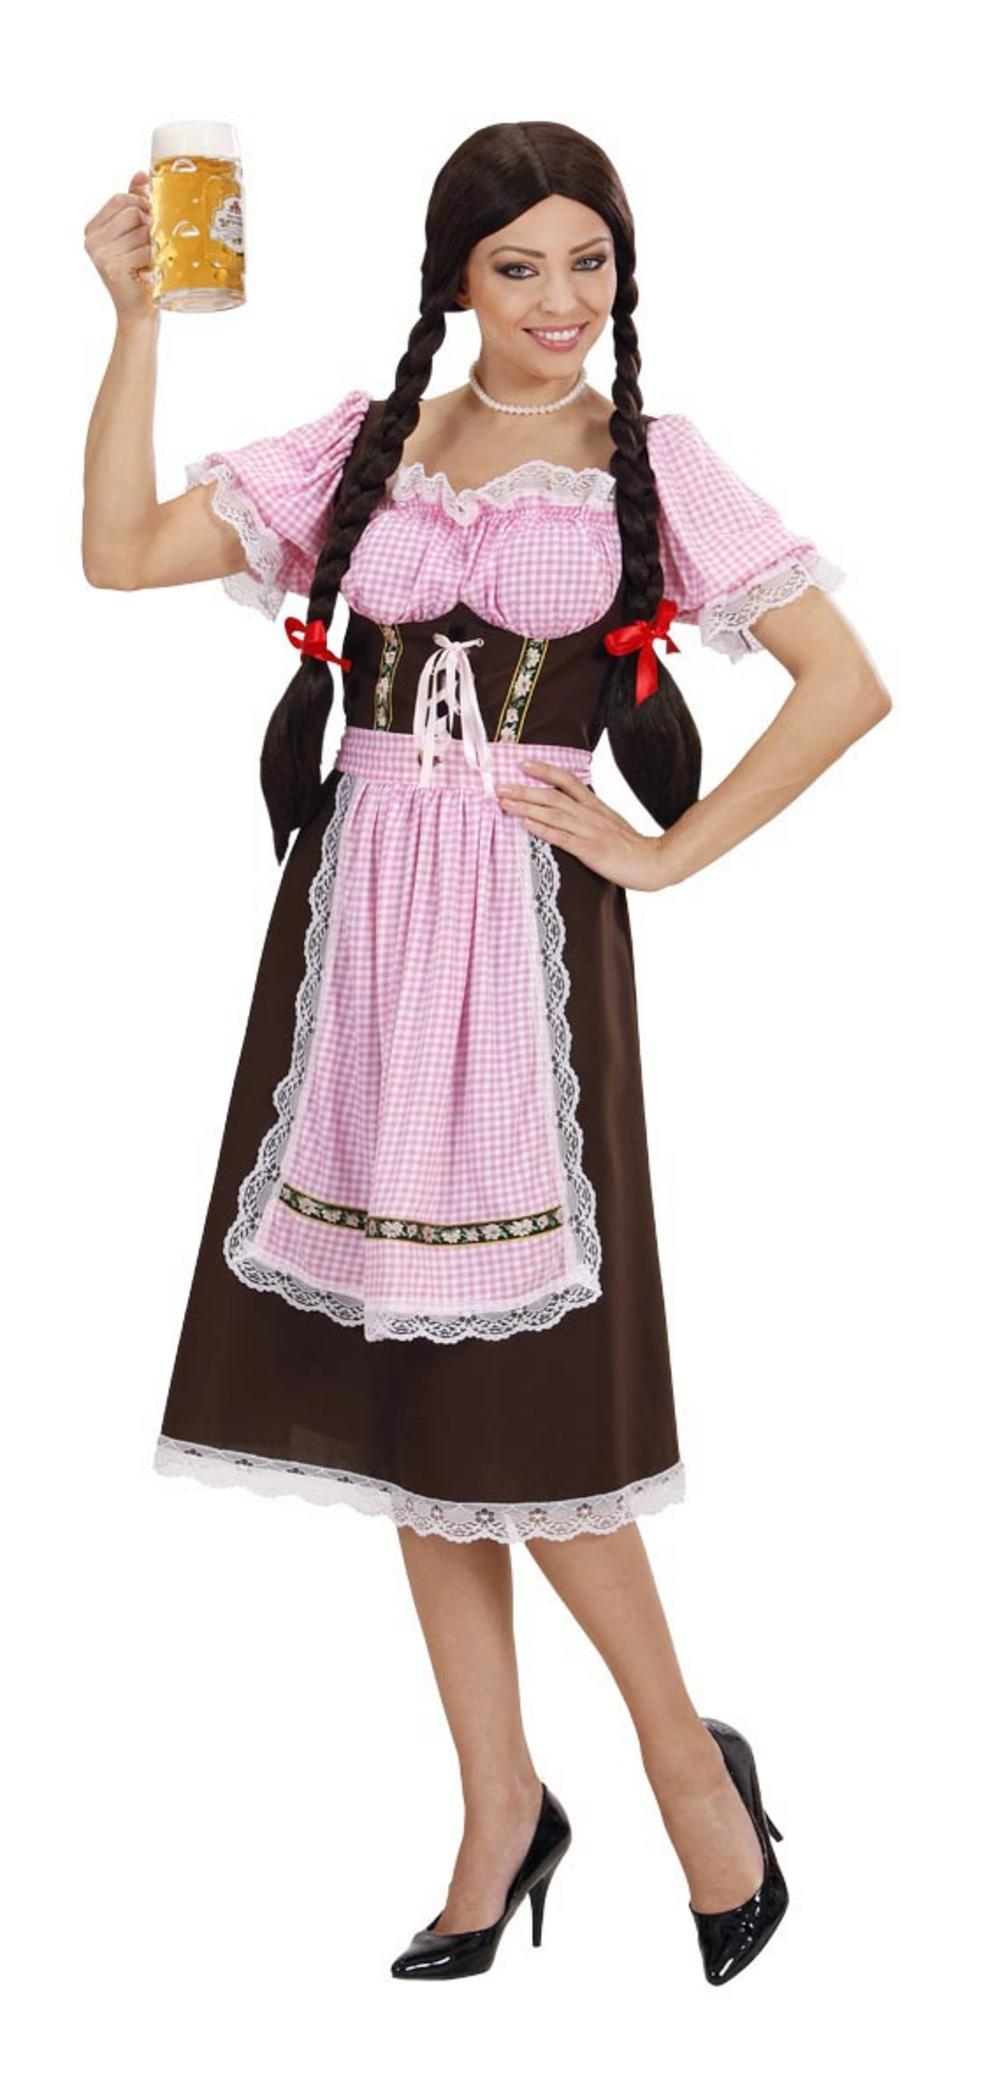 Deluxe Bavarian Beer Lady Costume Womens German Oktoberfest Fancy Dress Outfit